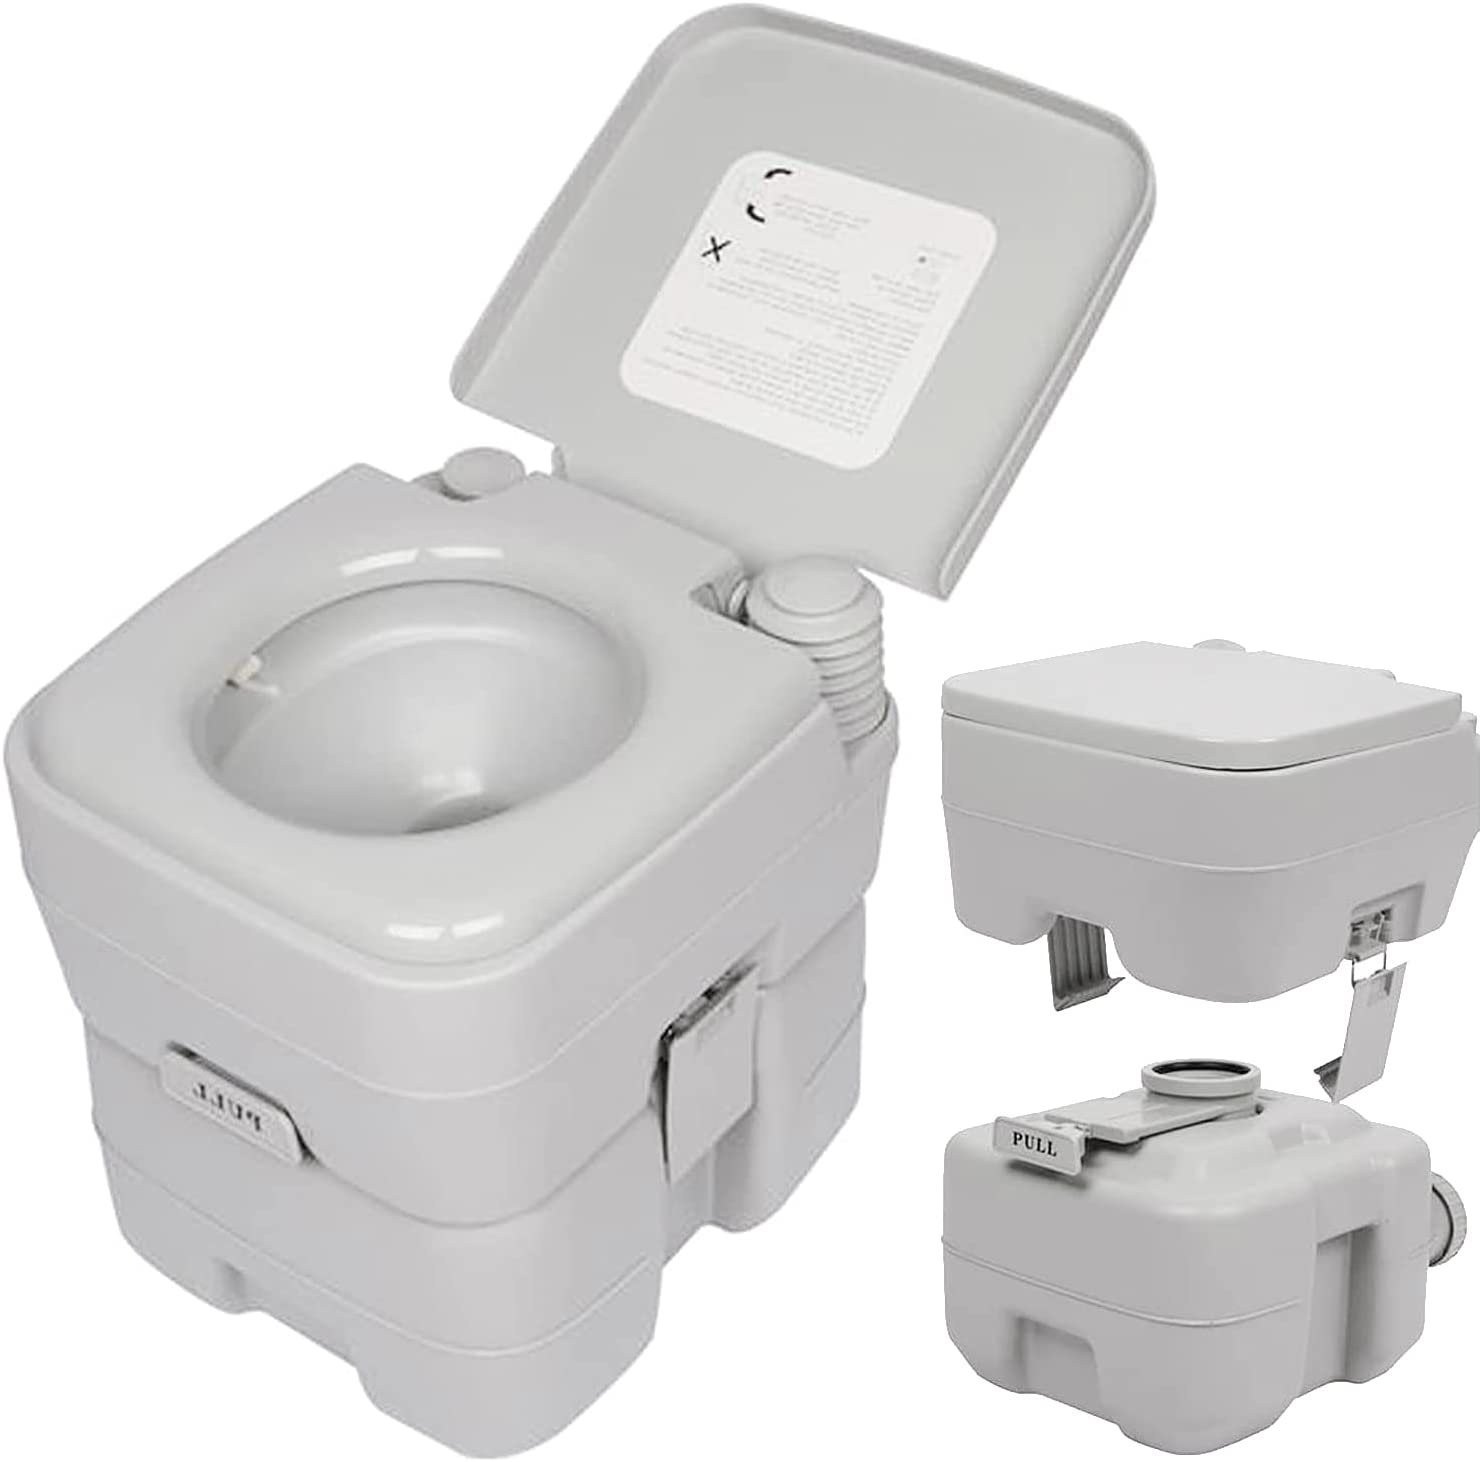 Portable Toilet Outdoor Indoor Camping Toi 67% OFF of fixed price Travel Movable Outlet SALE